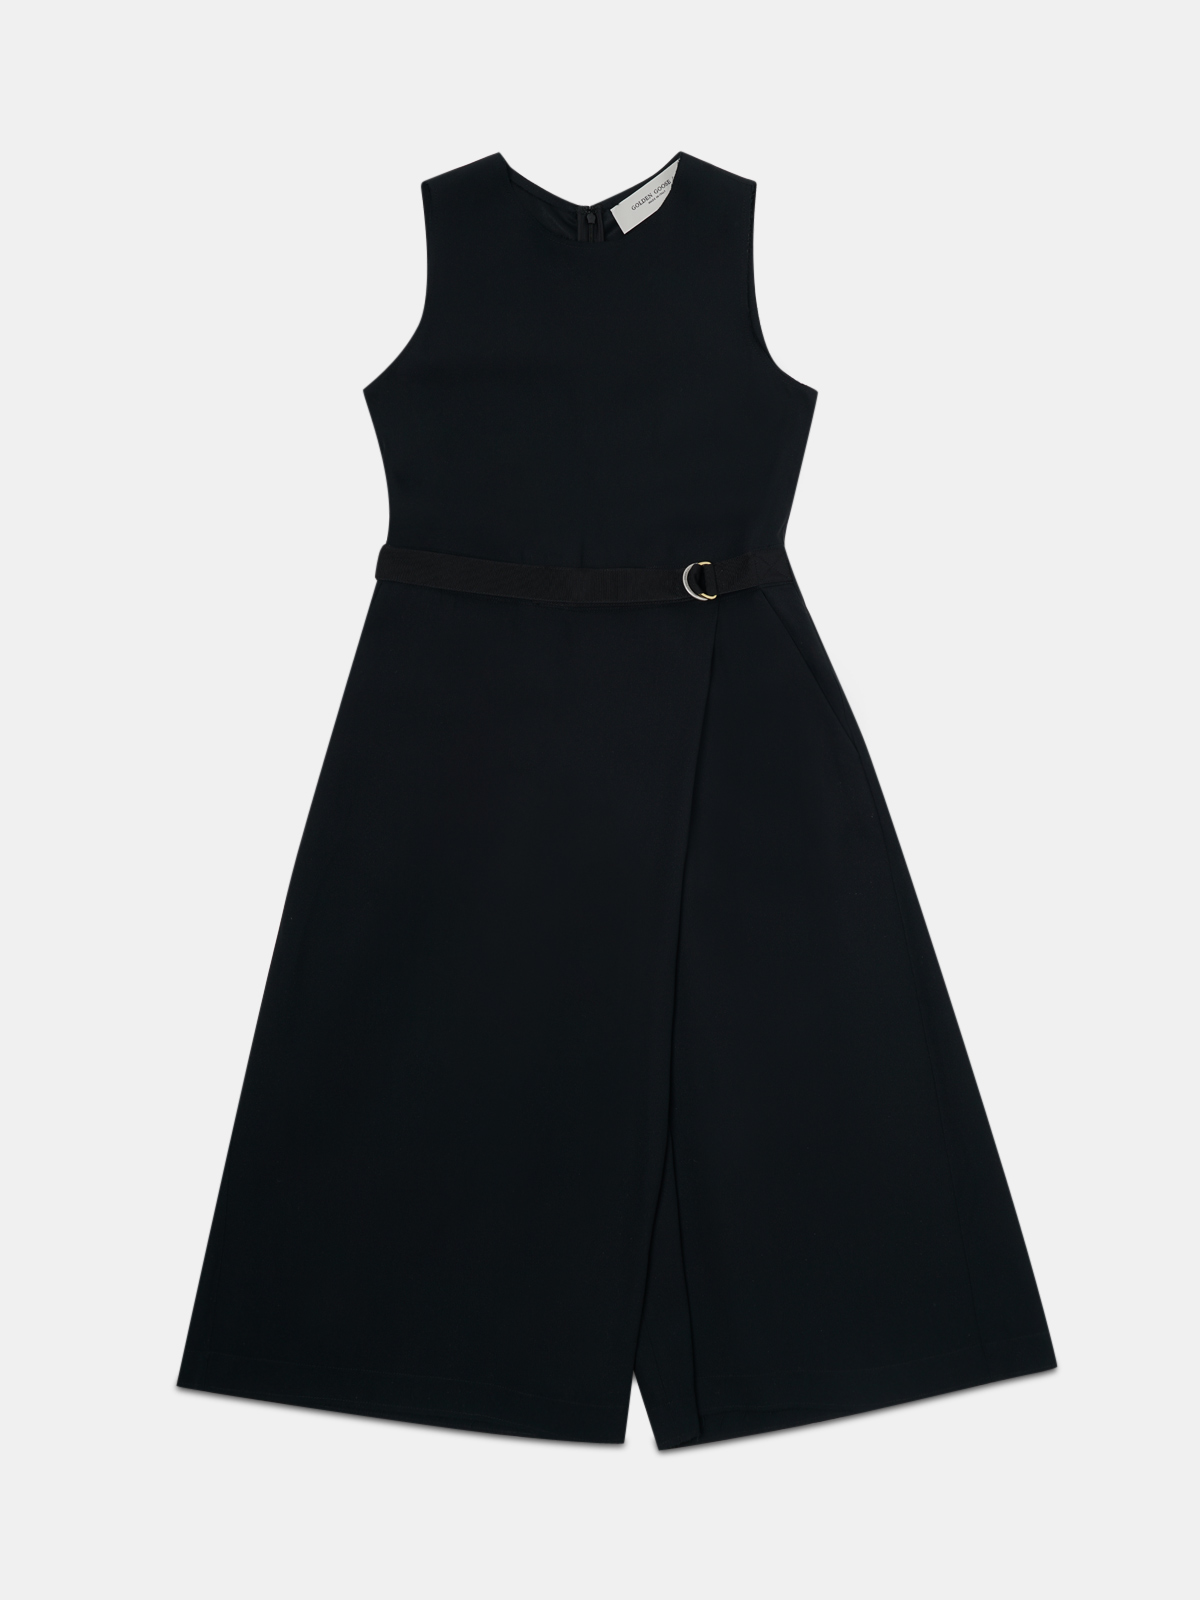 Golden Goose - Afrodite midi dress with panel at the front in